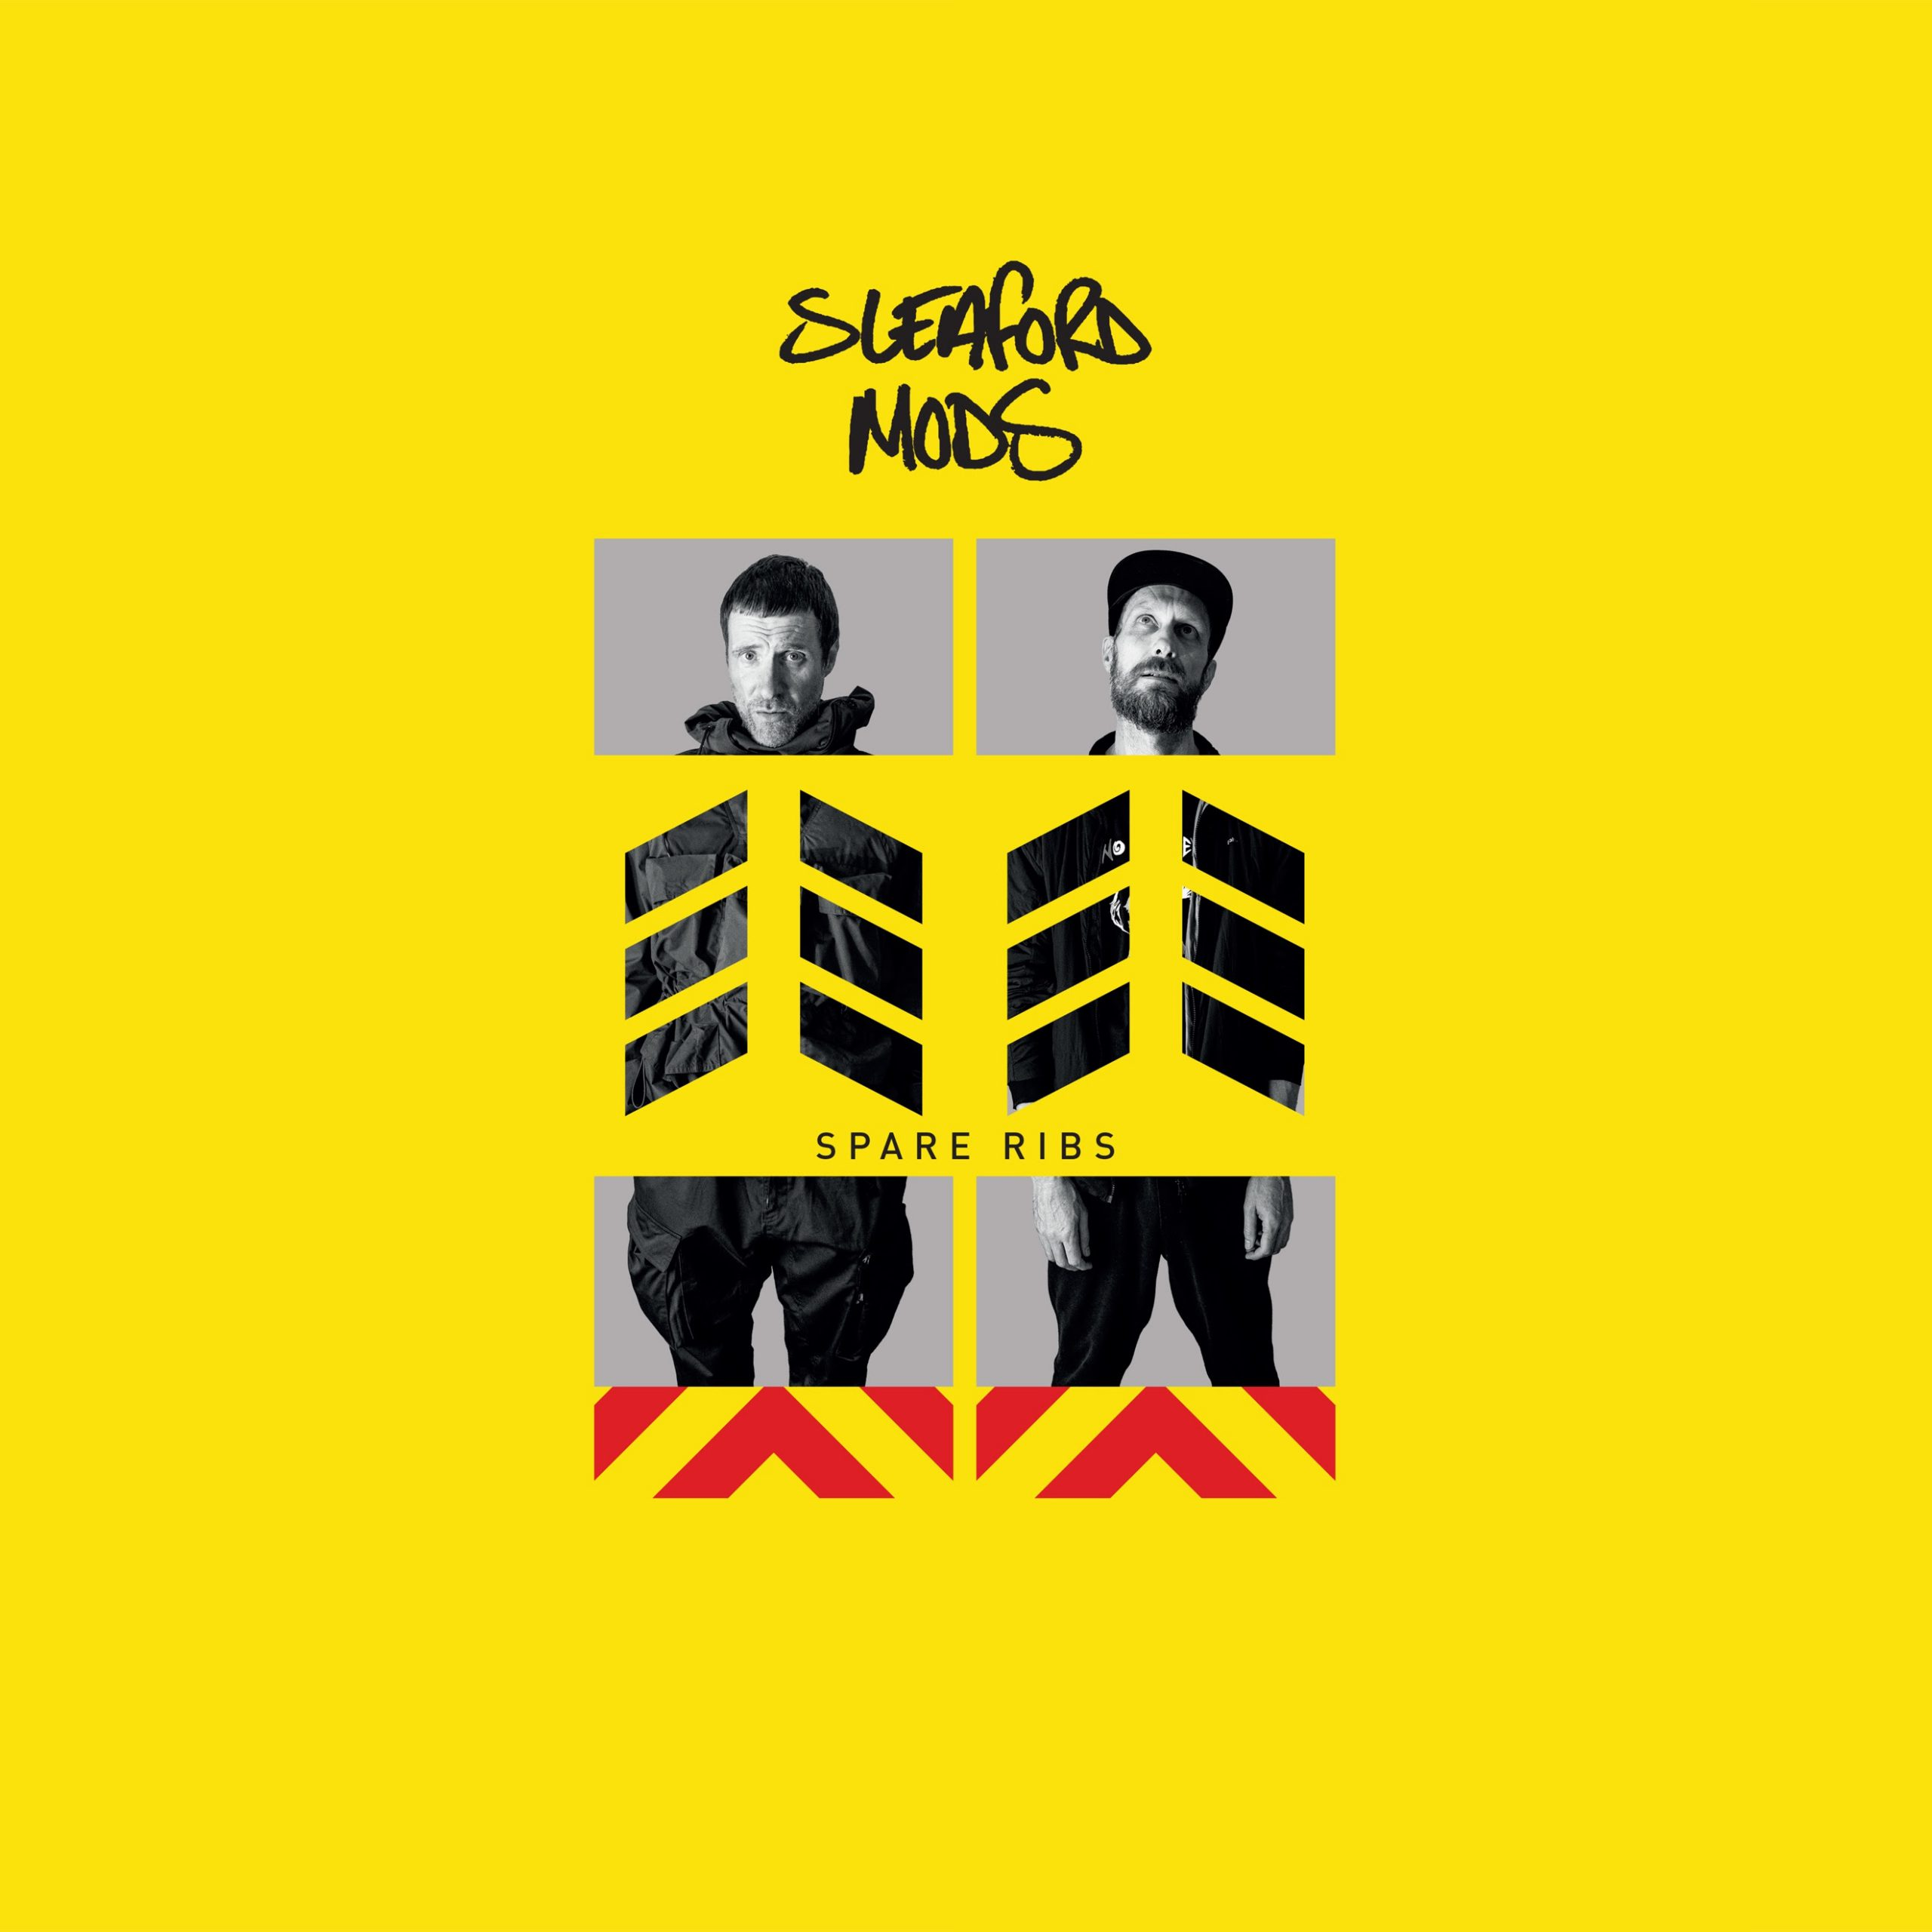 Sleaford Mods – Spare Ribs